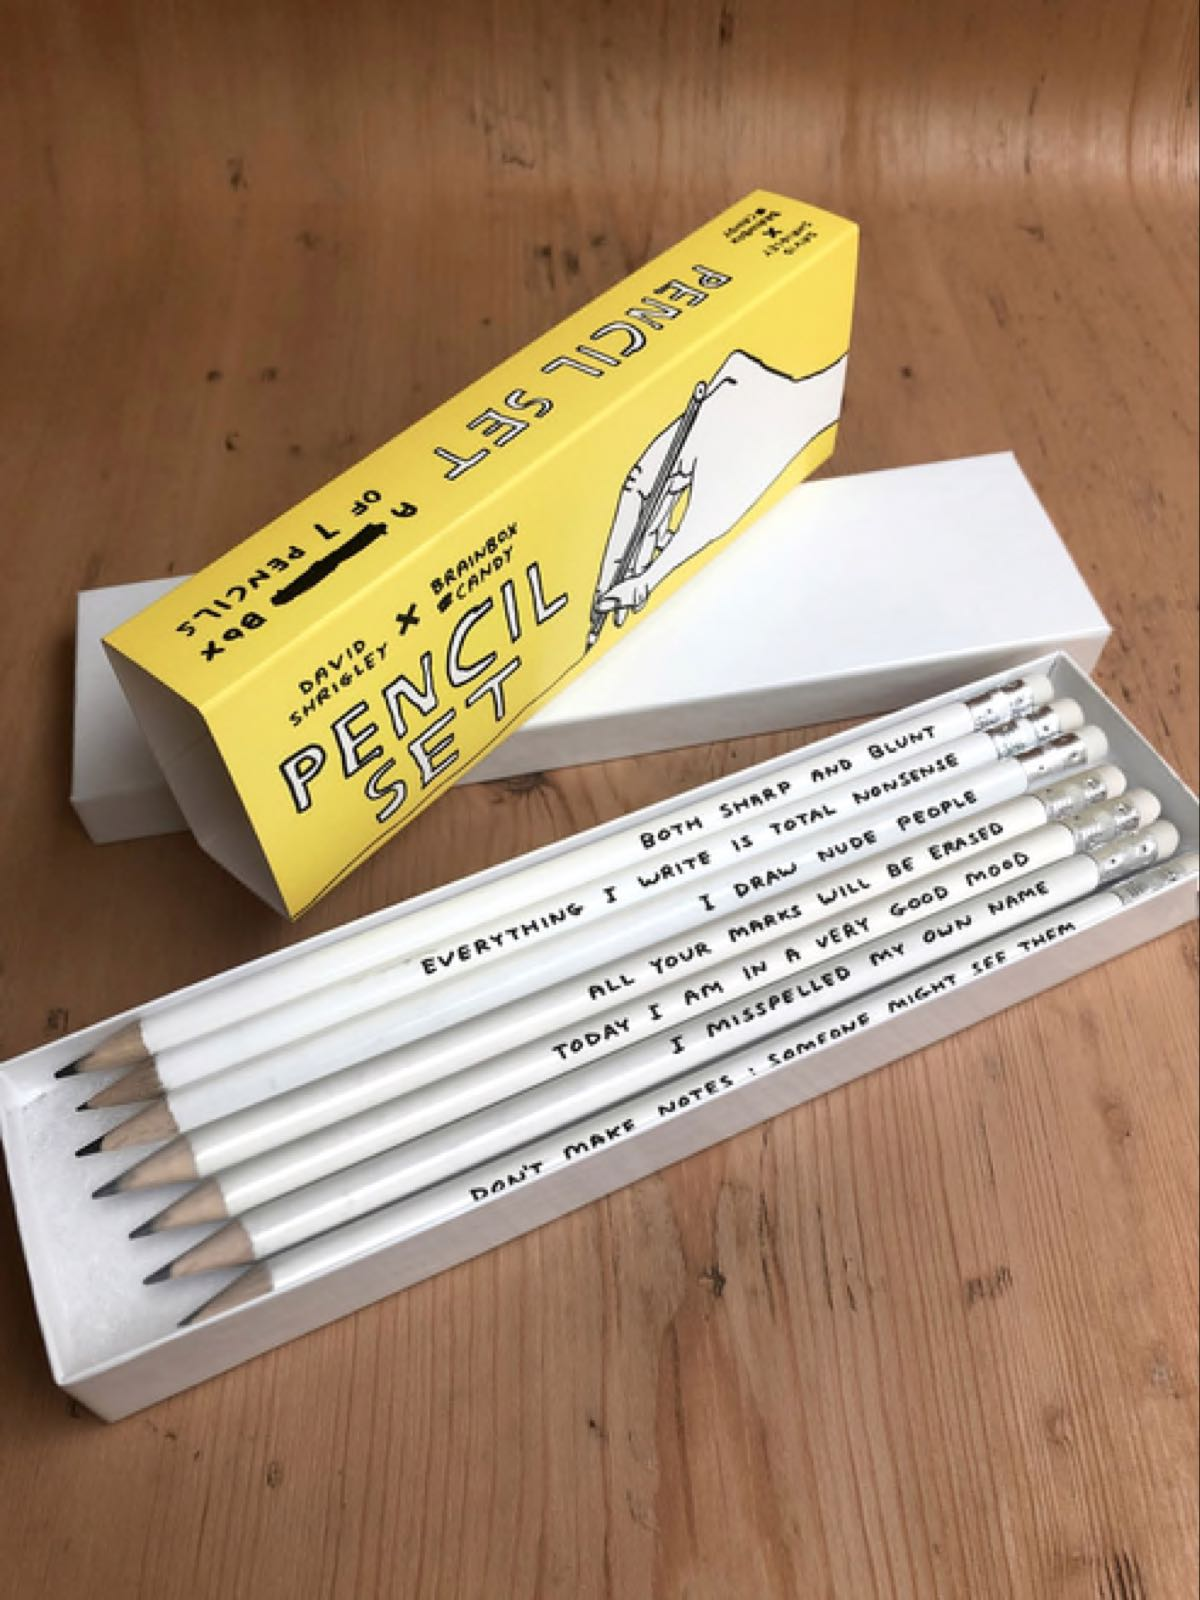 David Shrigley Pencil Box